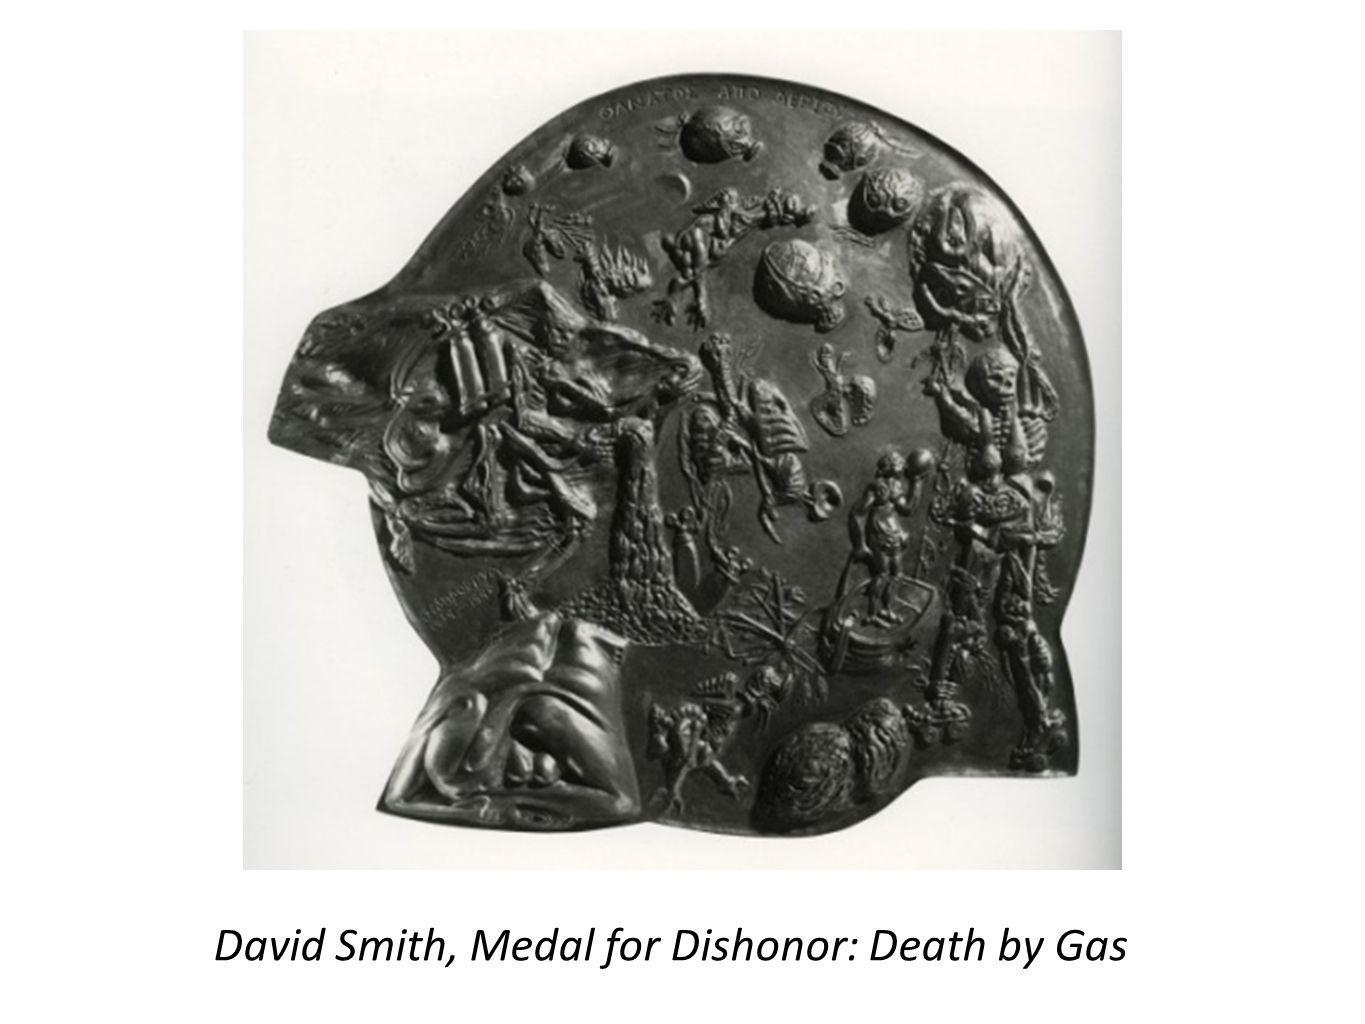 David Smith, Medal for Dishonor: Death by Gas